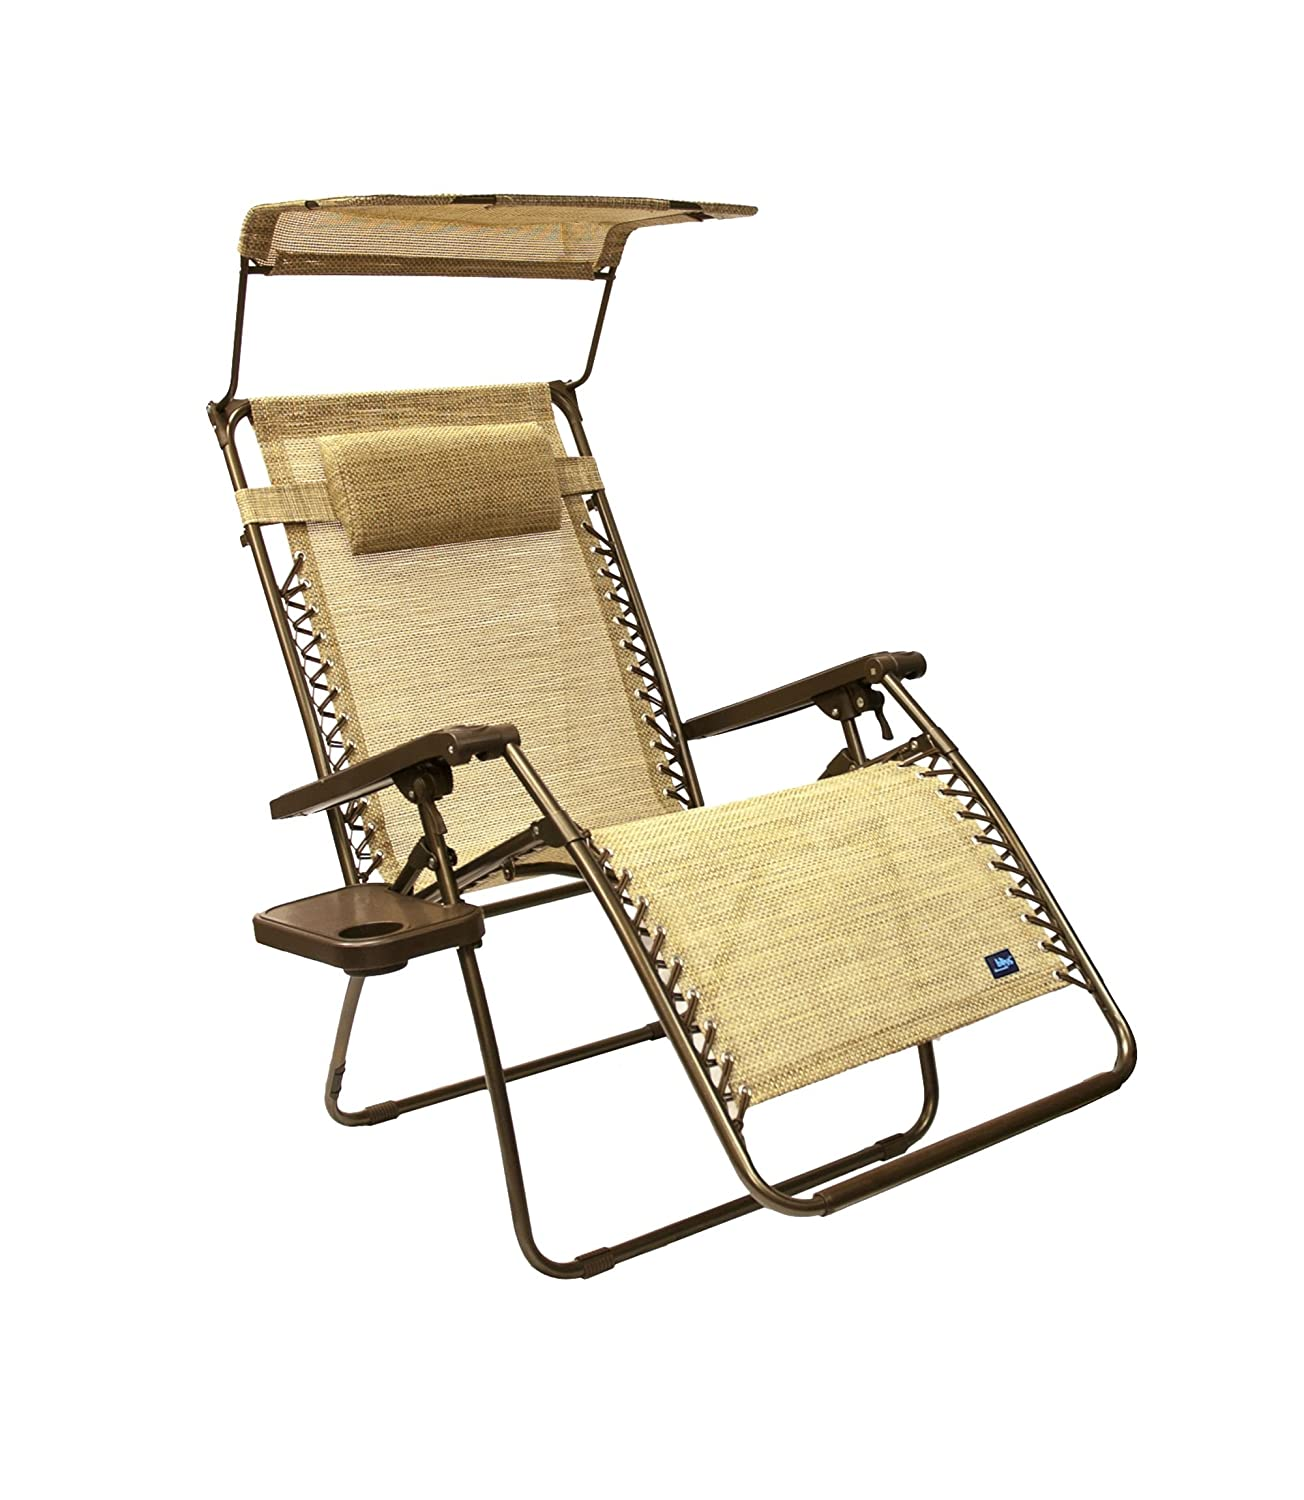 Perfect Amazon.com : Bliss Hammocks Wide Gravity Free Lounger Chair With Pillow And  Canopy And Side Tray, Sand : Patio Recliners : Garden U0026 Outdoor